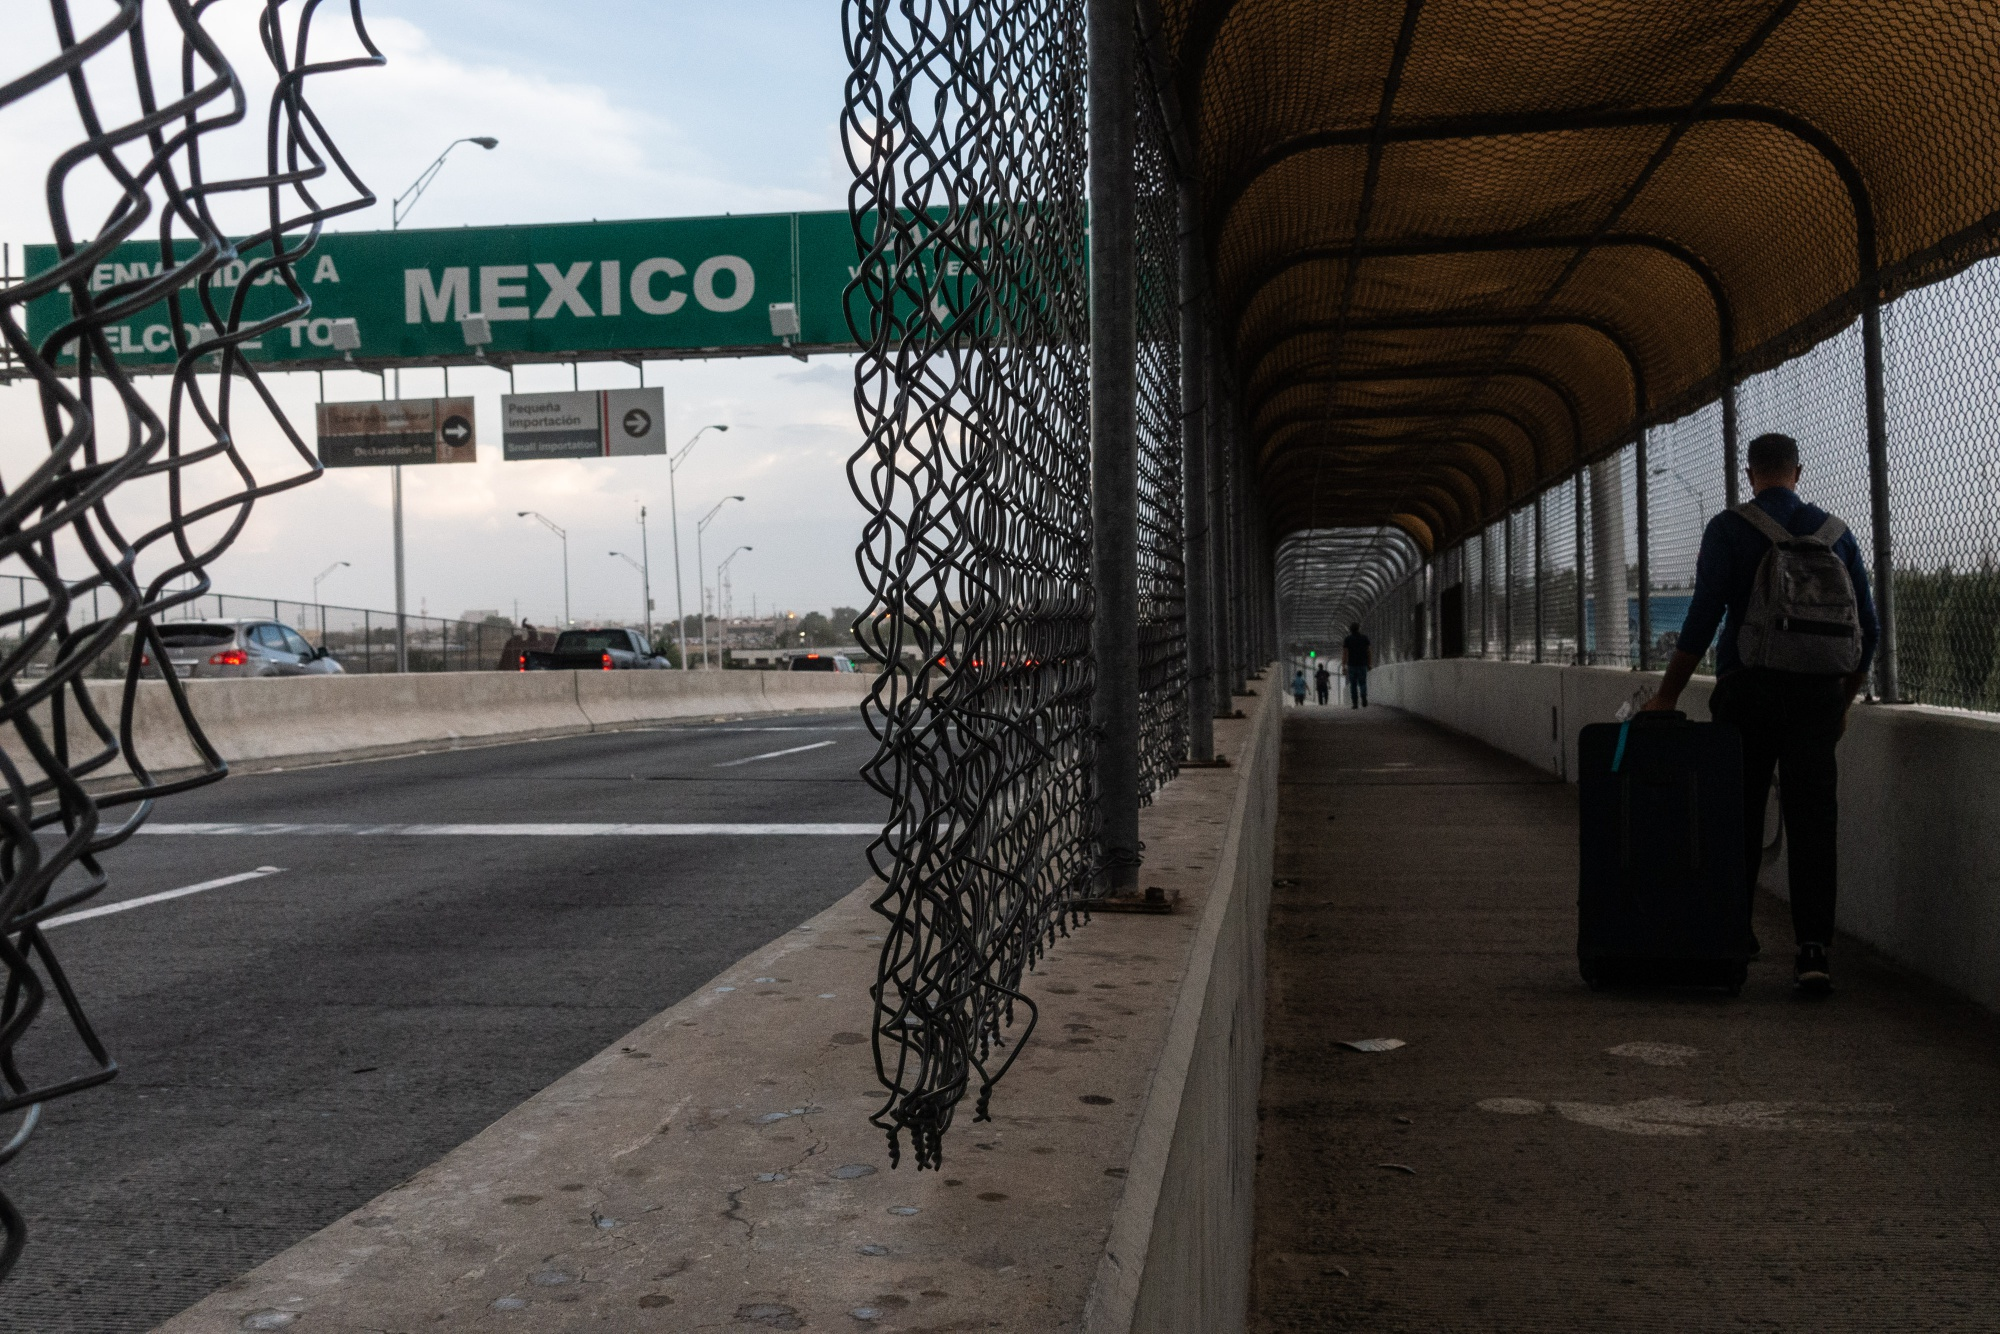 Children Die At Record Speed On U.S. Border While Coyotes Get Rich